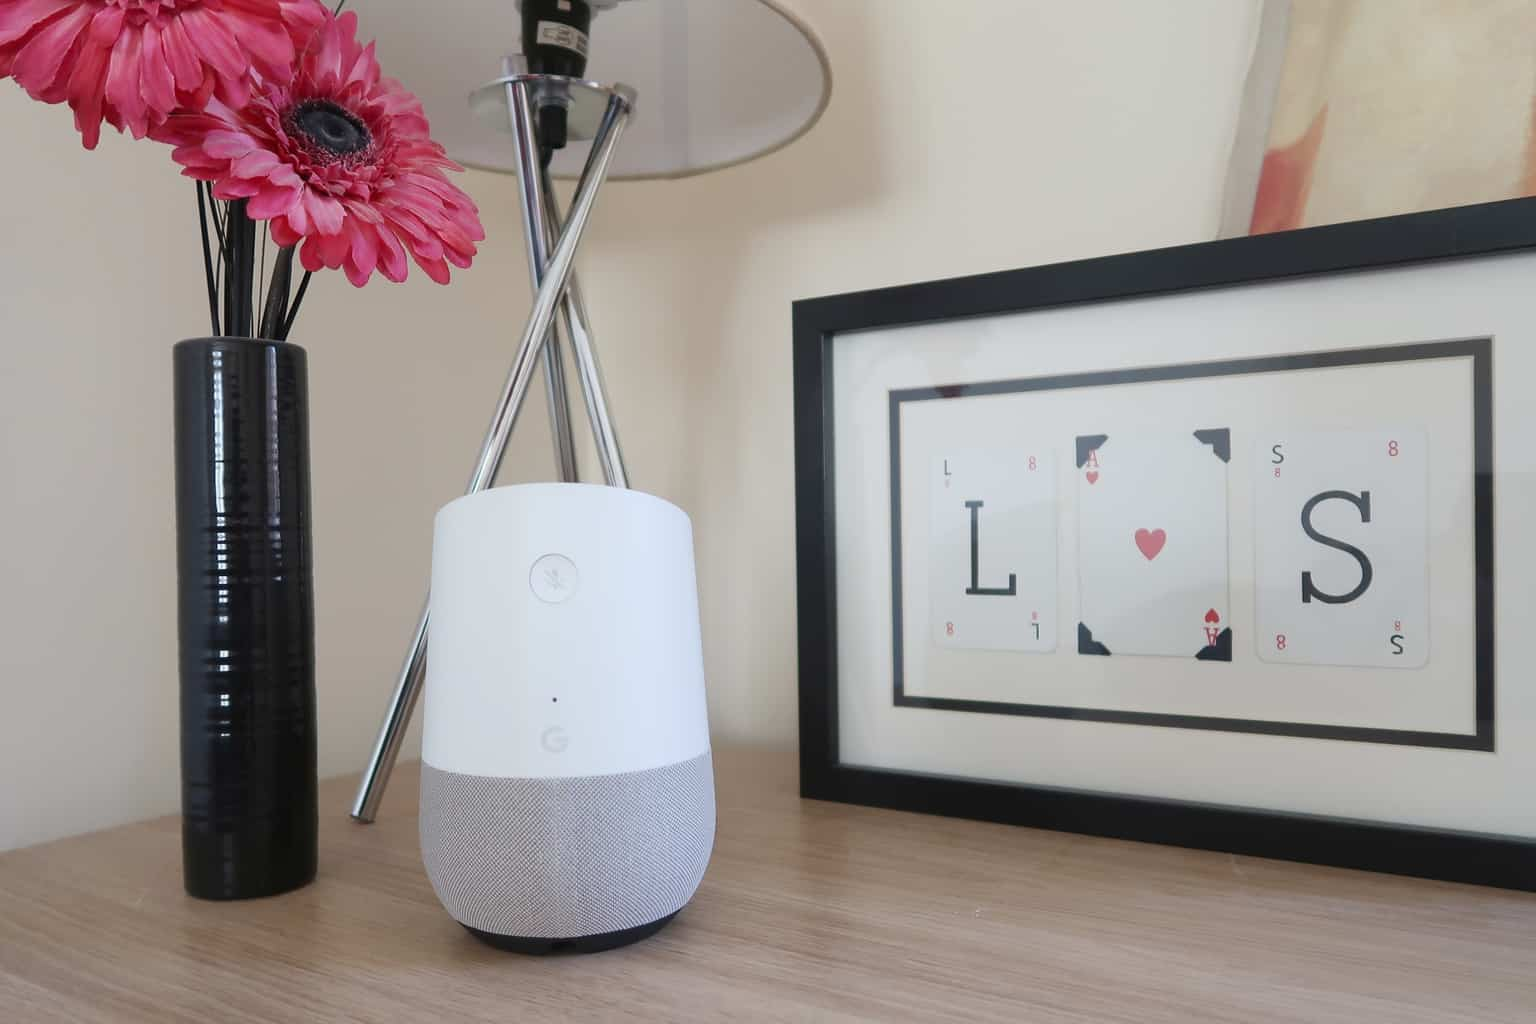 Google Home for Families